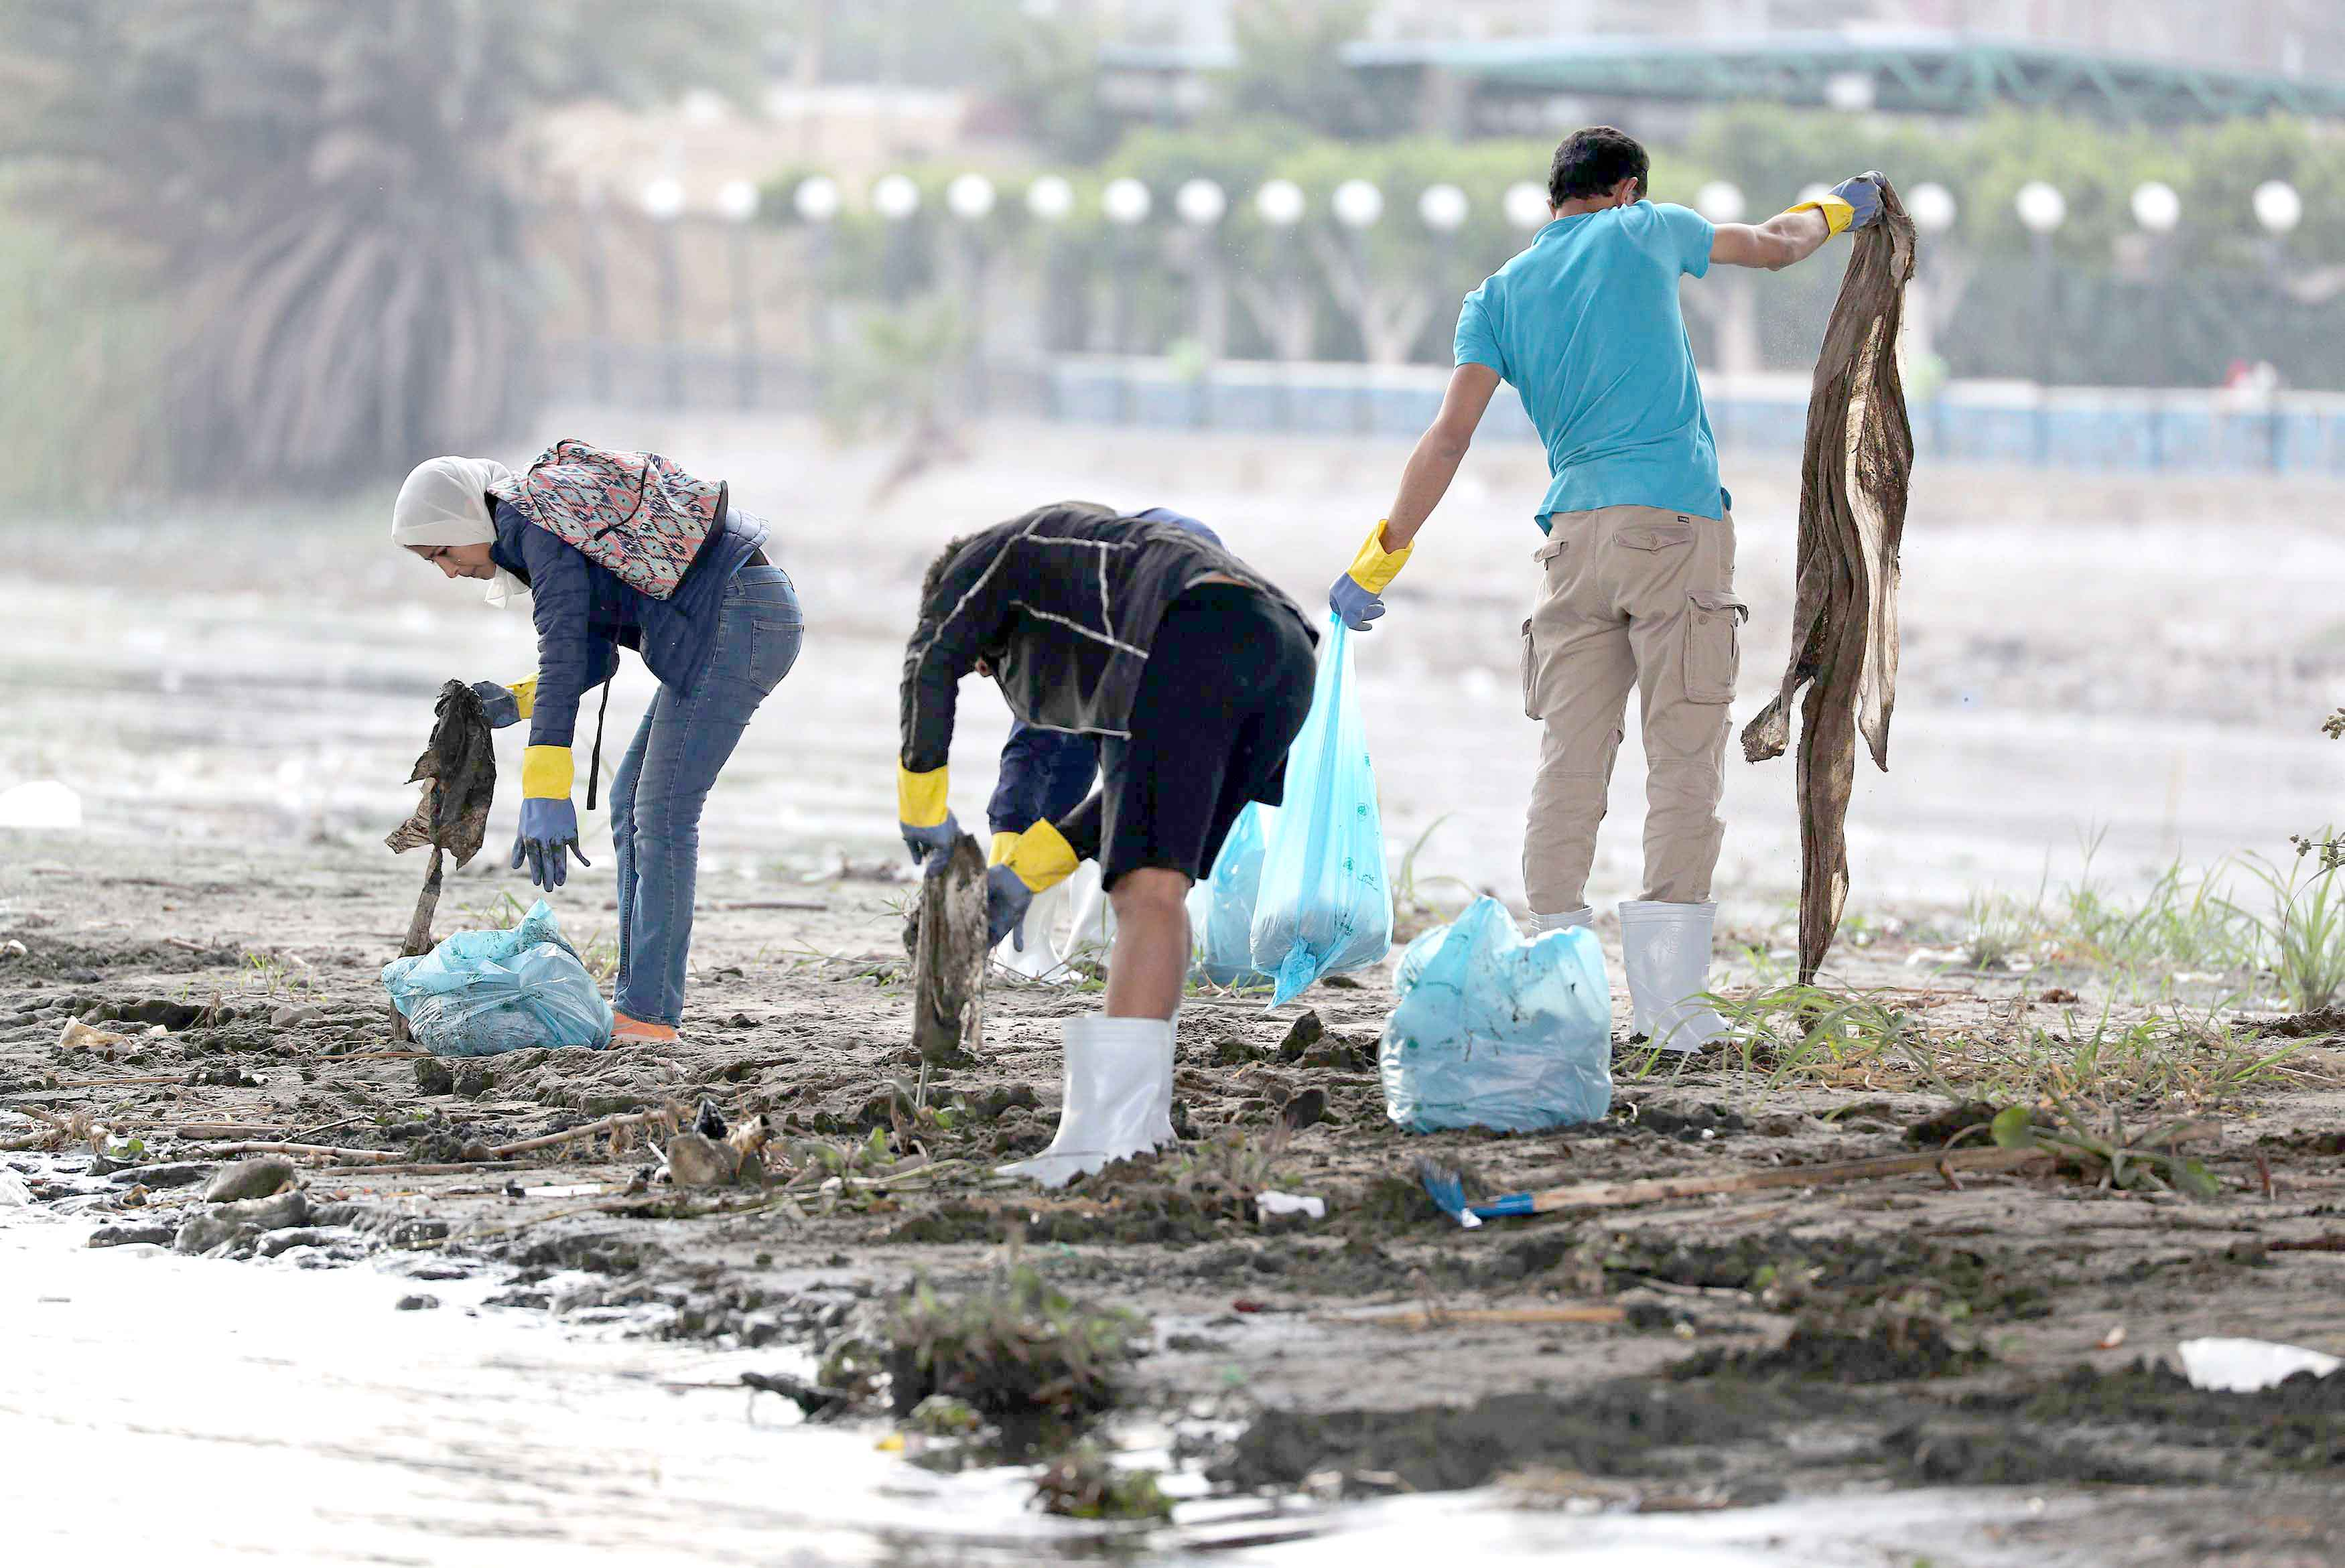 Choking the river. Egyptian volunteers collect waste and plastic as part of a campaign to clean up the Nile River.(Reuters)